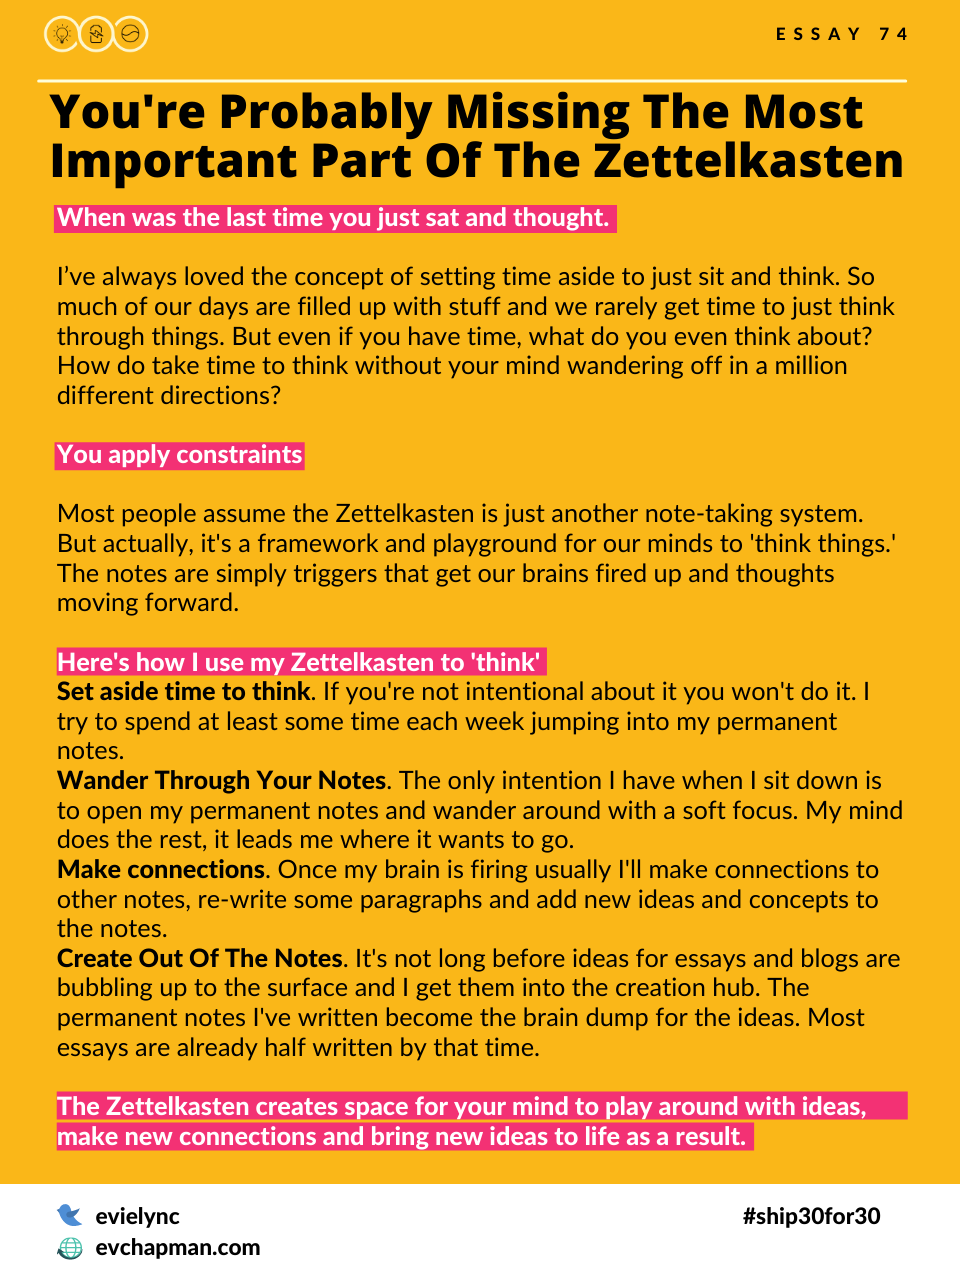 You're Probably Missing The Most Important Part Of The Zettelkasten